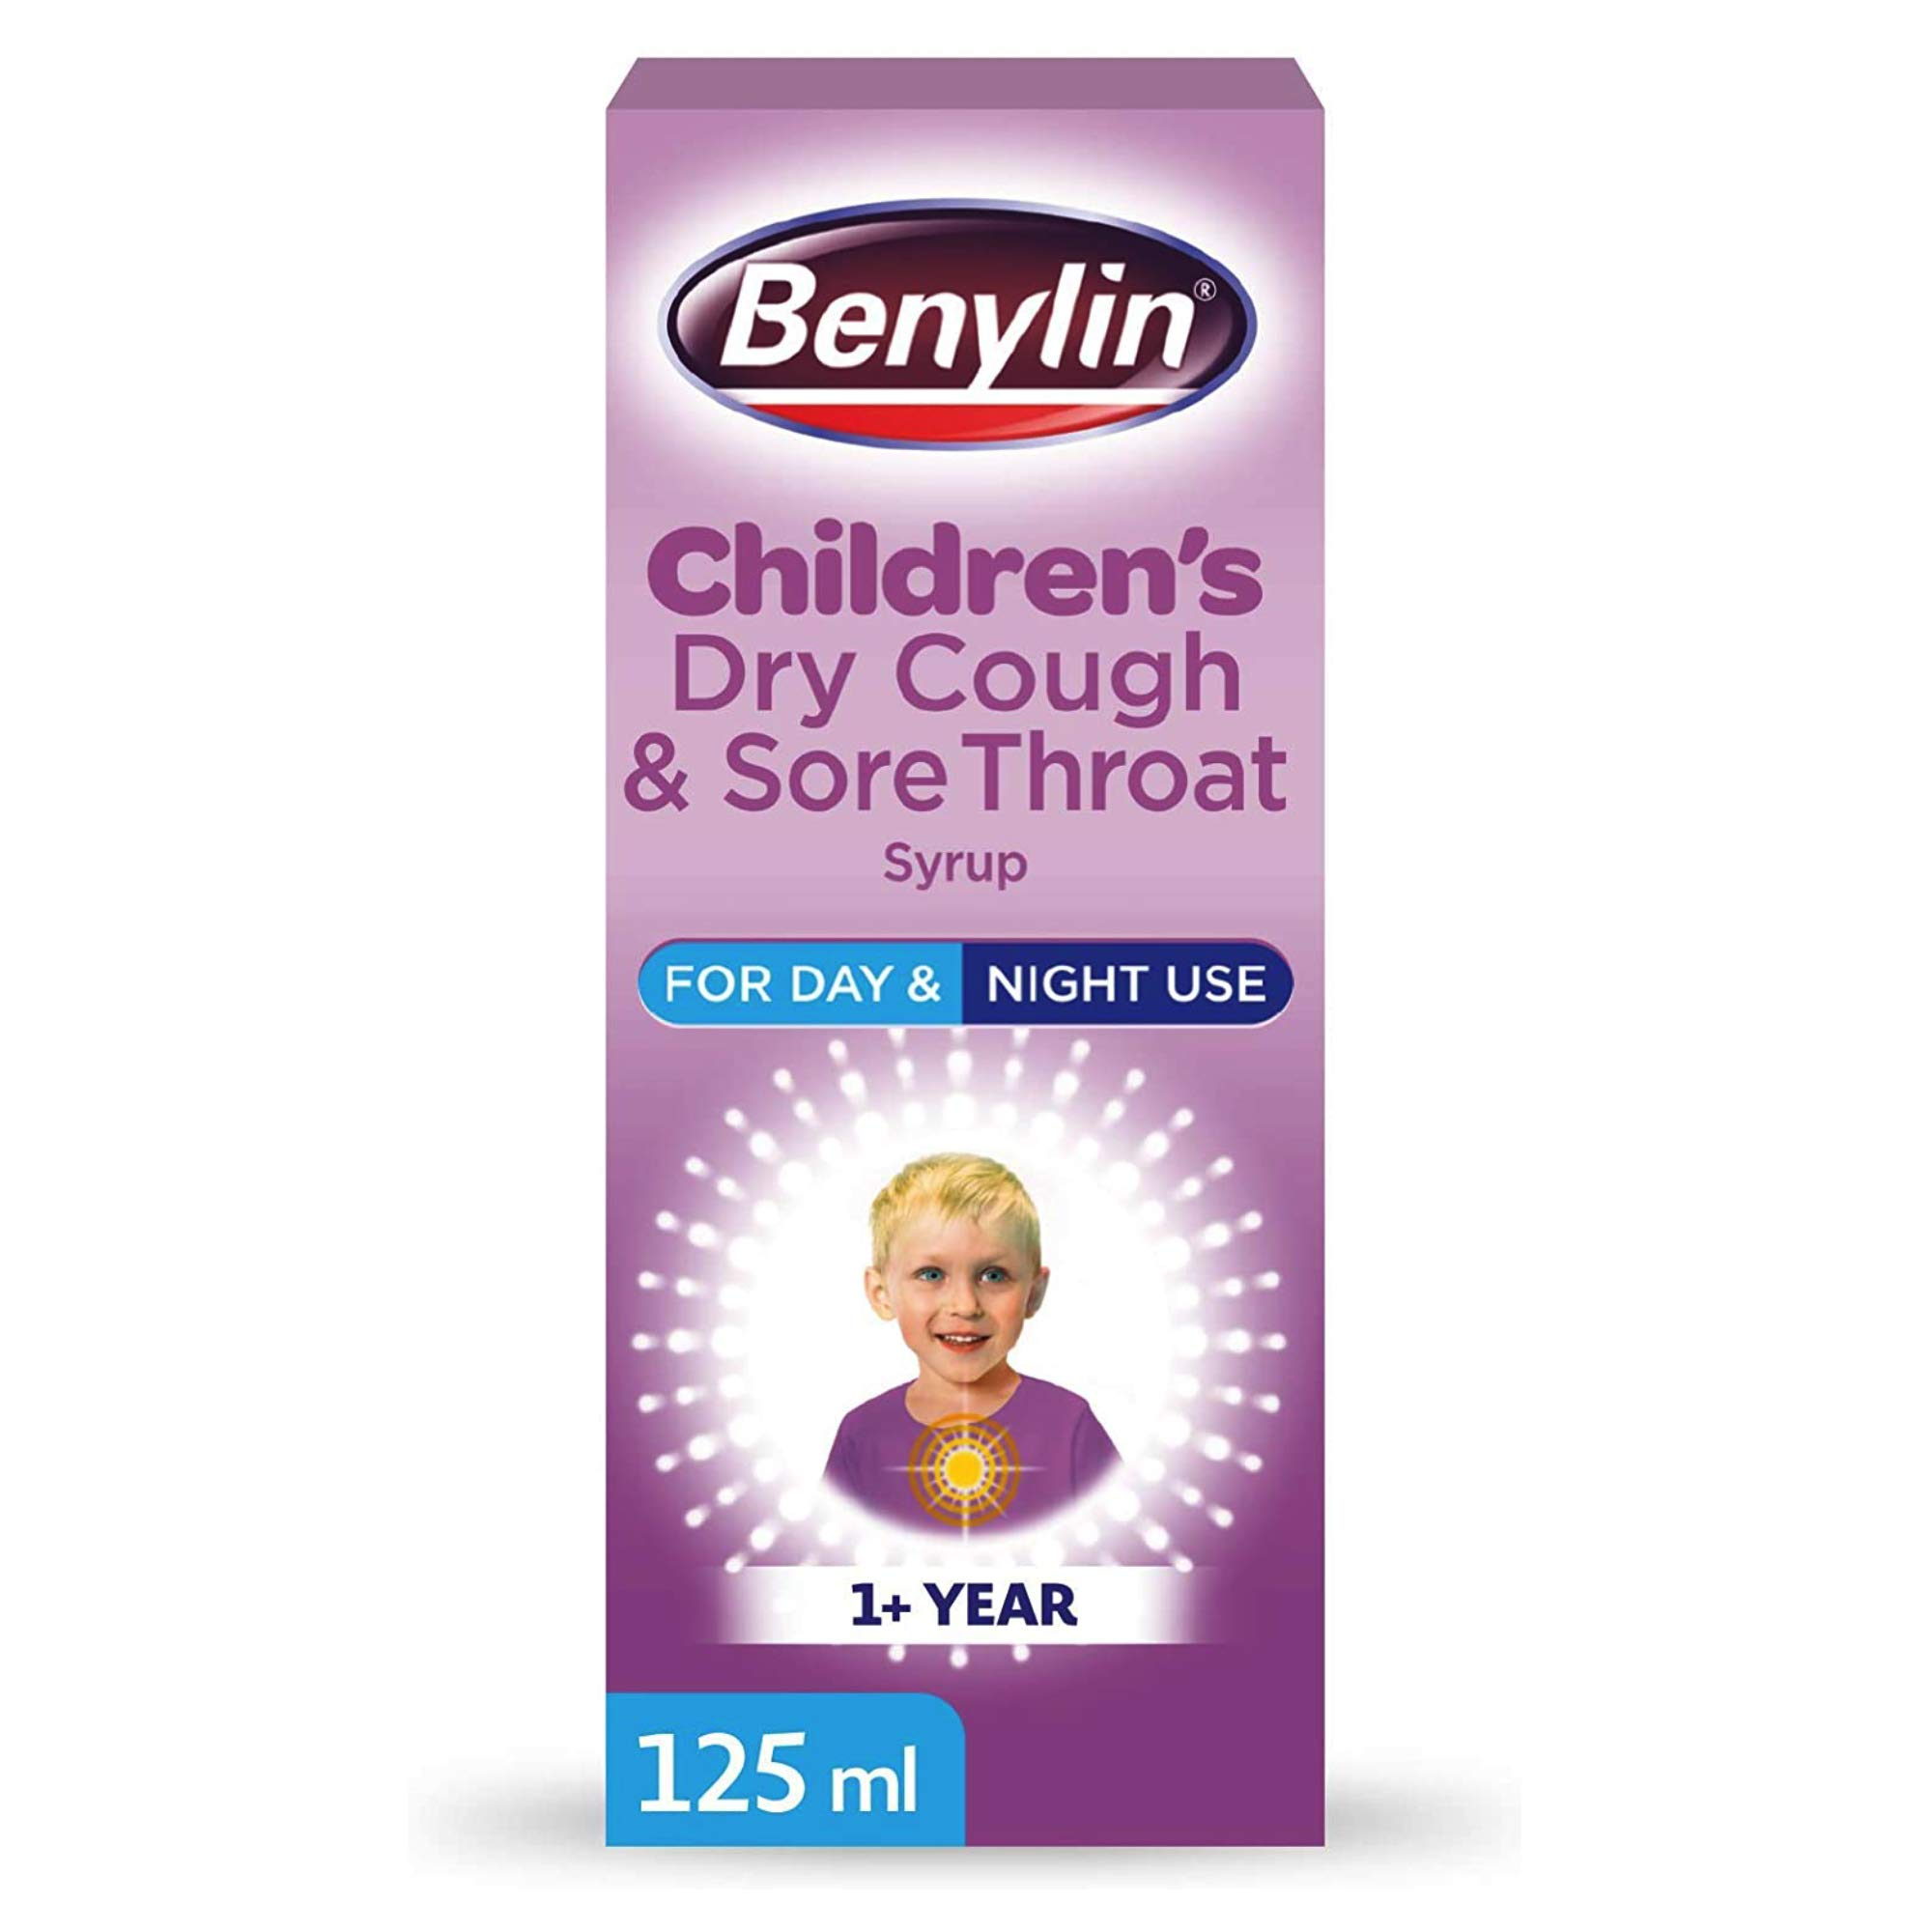 Benylin Children S Dry Cough And Sore Throat Syrup 125ml Buy Online In Pakistan At Desertcart Pk Productid 67648311